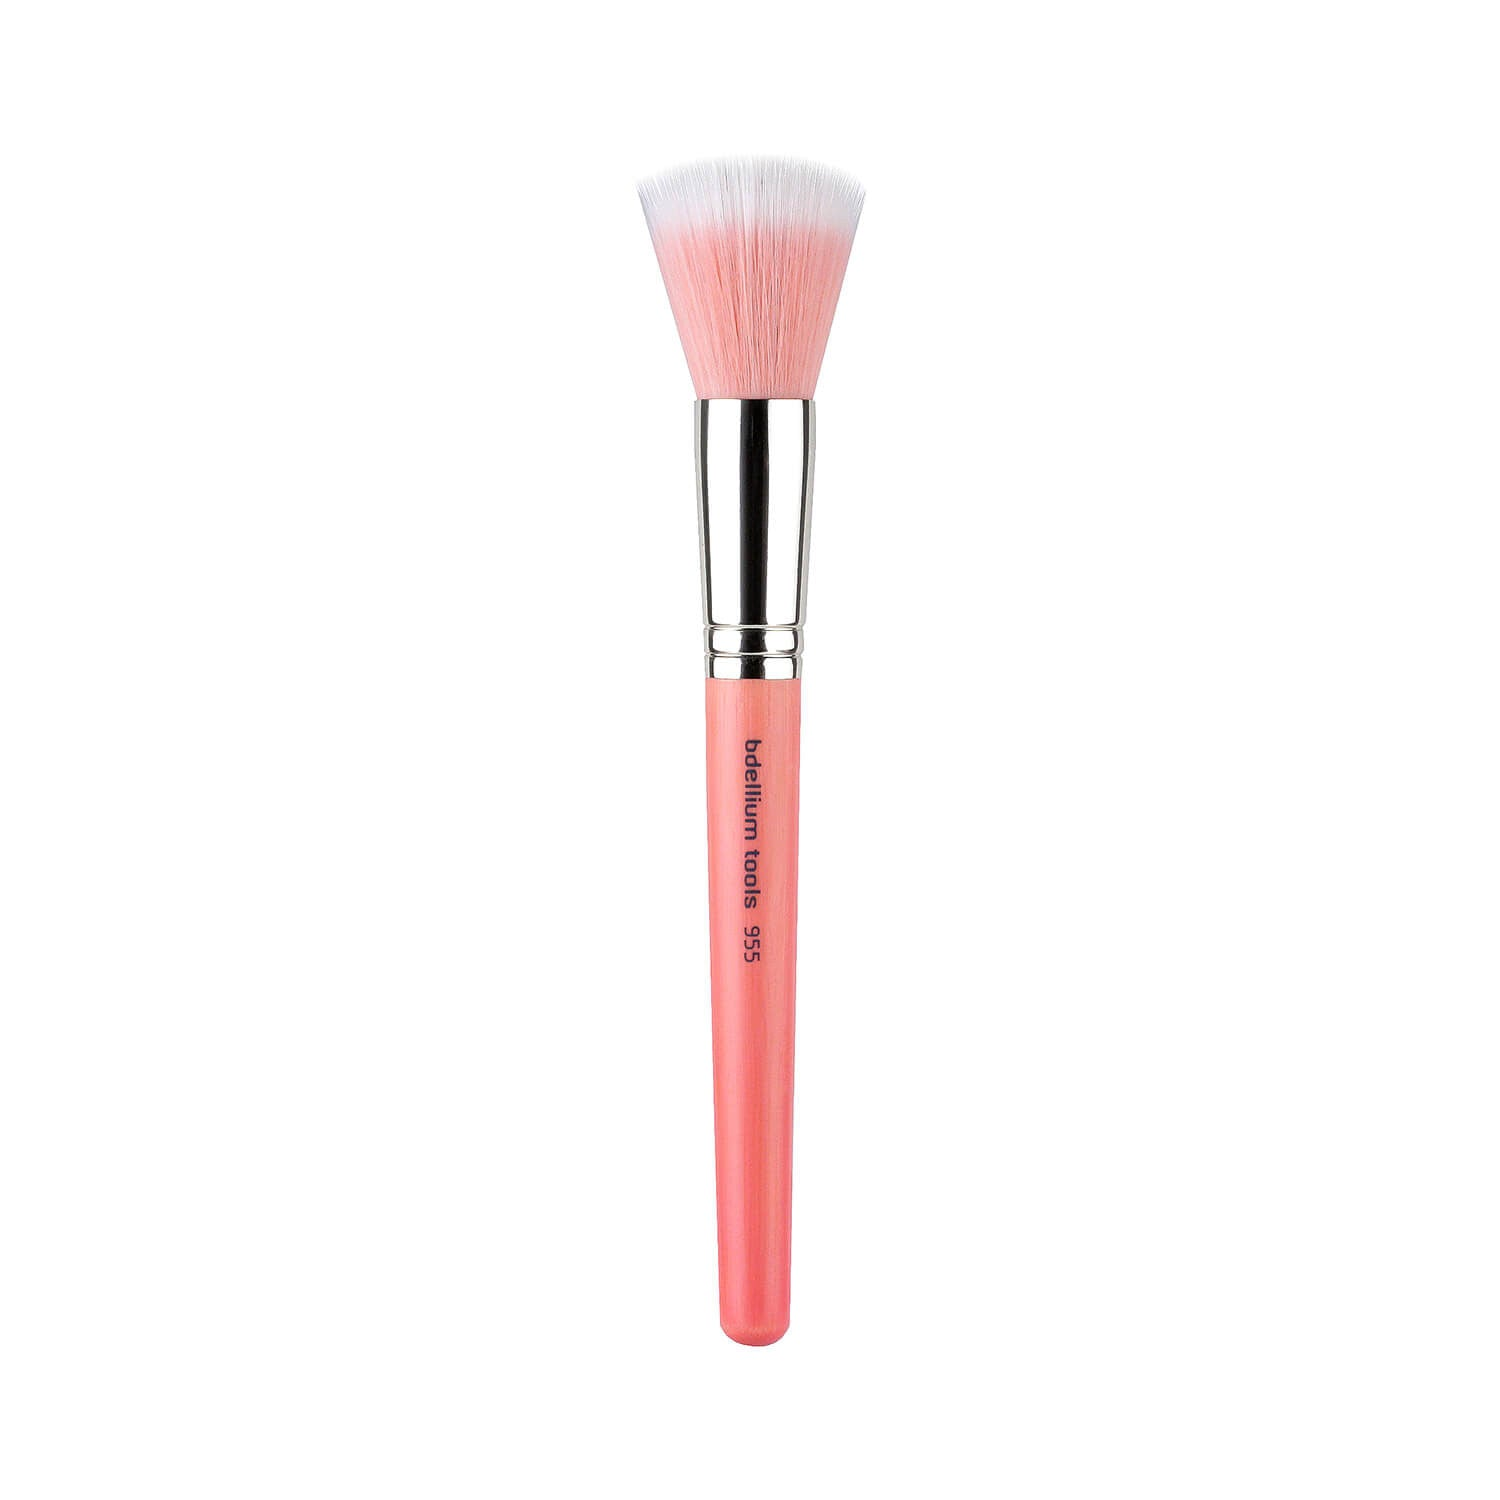 BDellium Tools Pink Bambu 955 Finishing Brush Pink